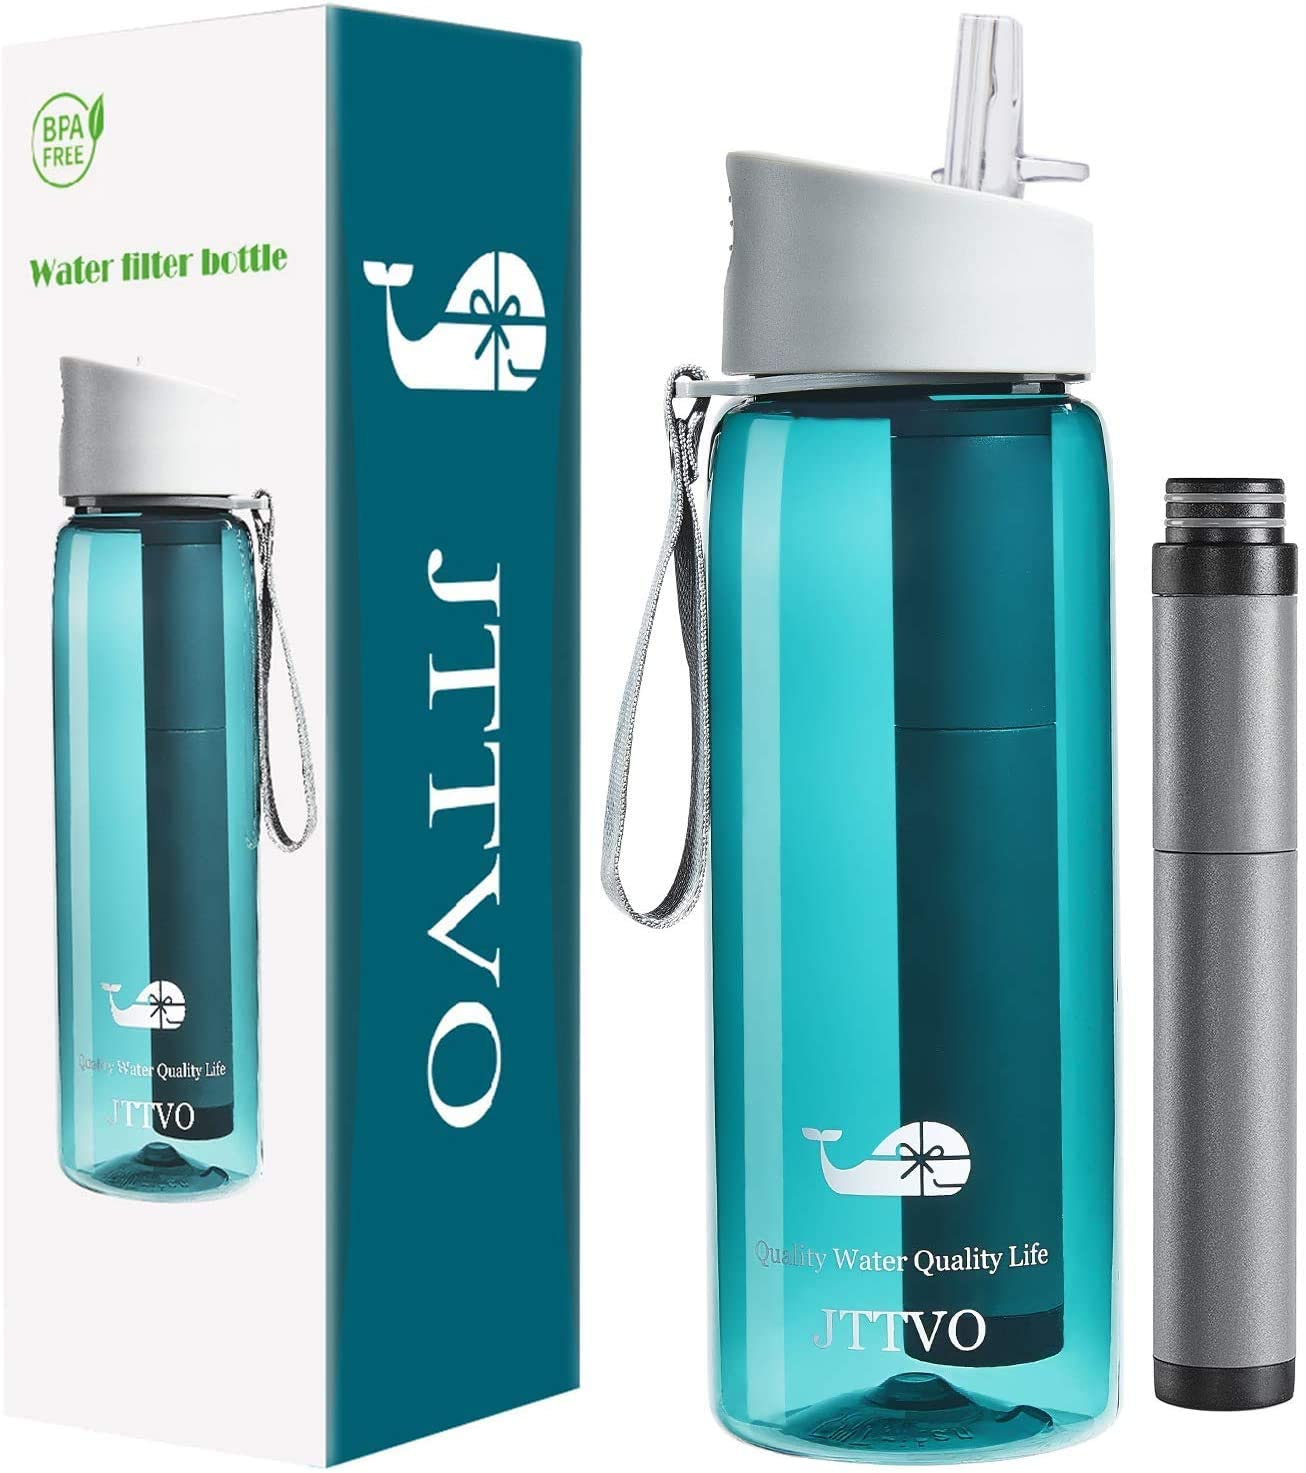 Amazon coupon code for Water Bottle with Filter for Tap Water